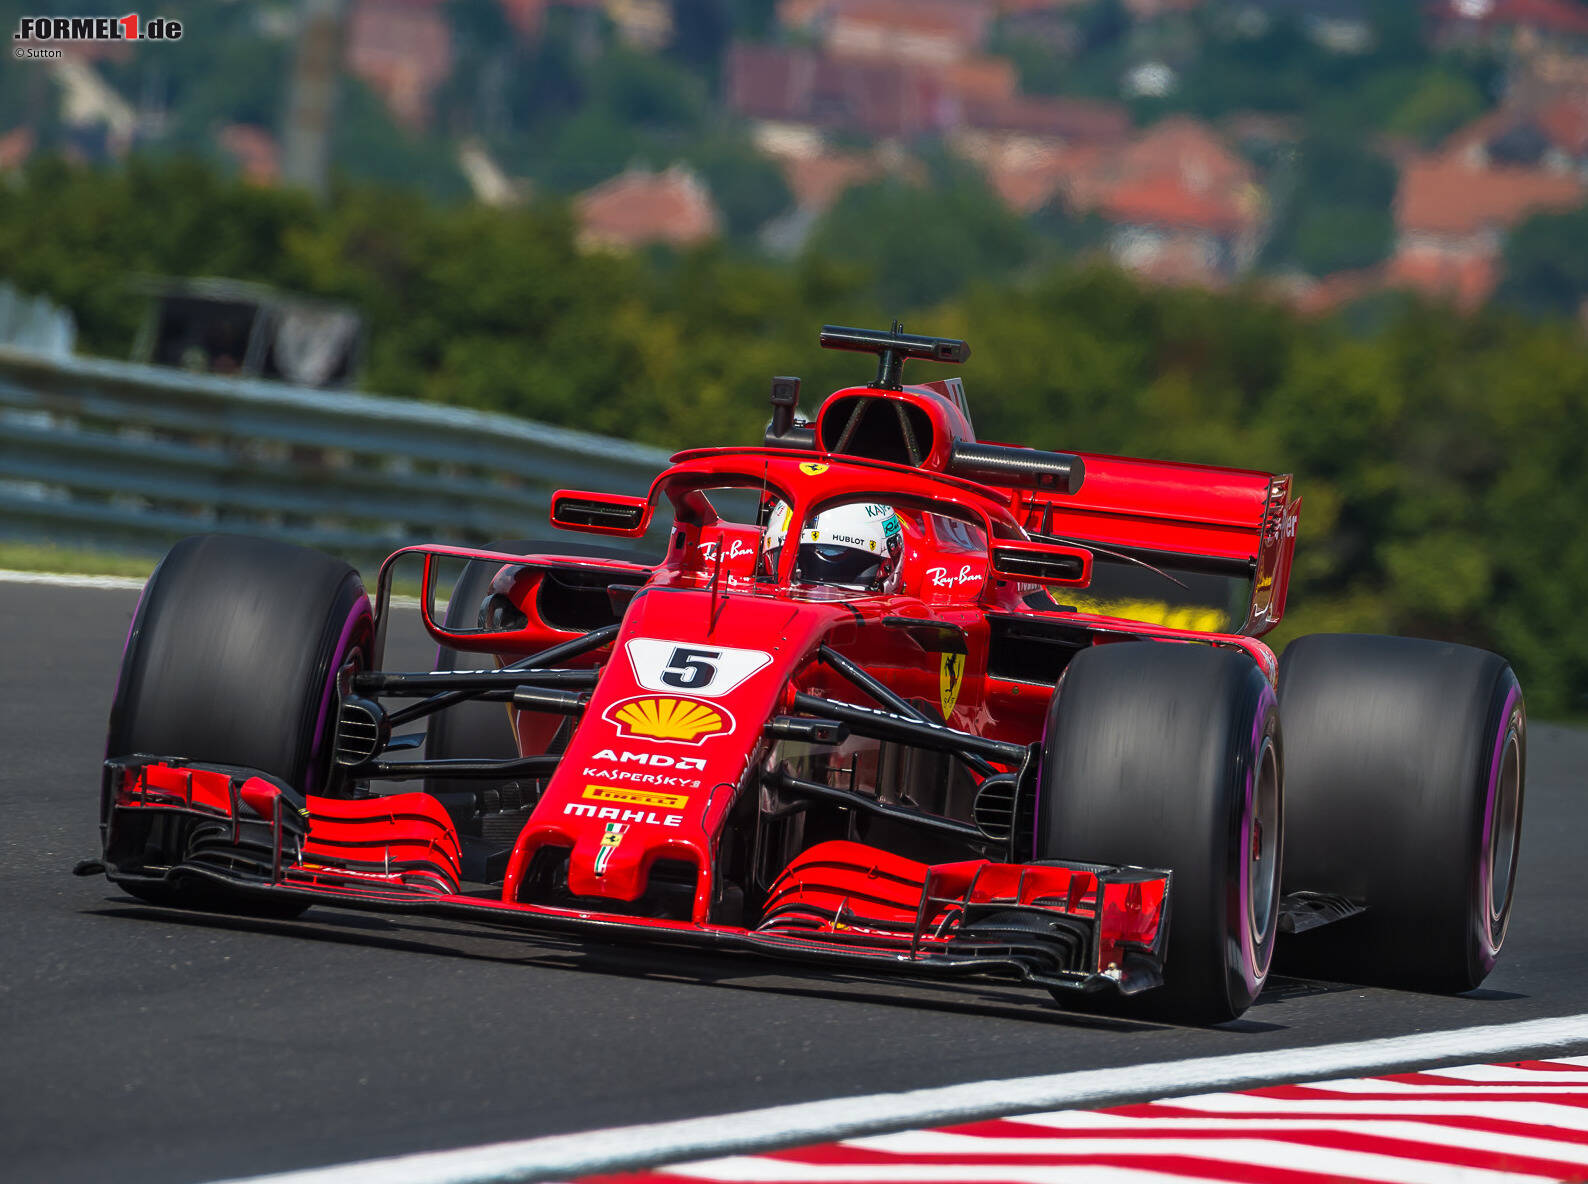 formel 1 ungarn 2018 ferrari nur knapp vor mercedes. Black Bedroom Furniture Sets. Home Design Ideas